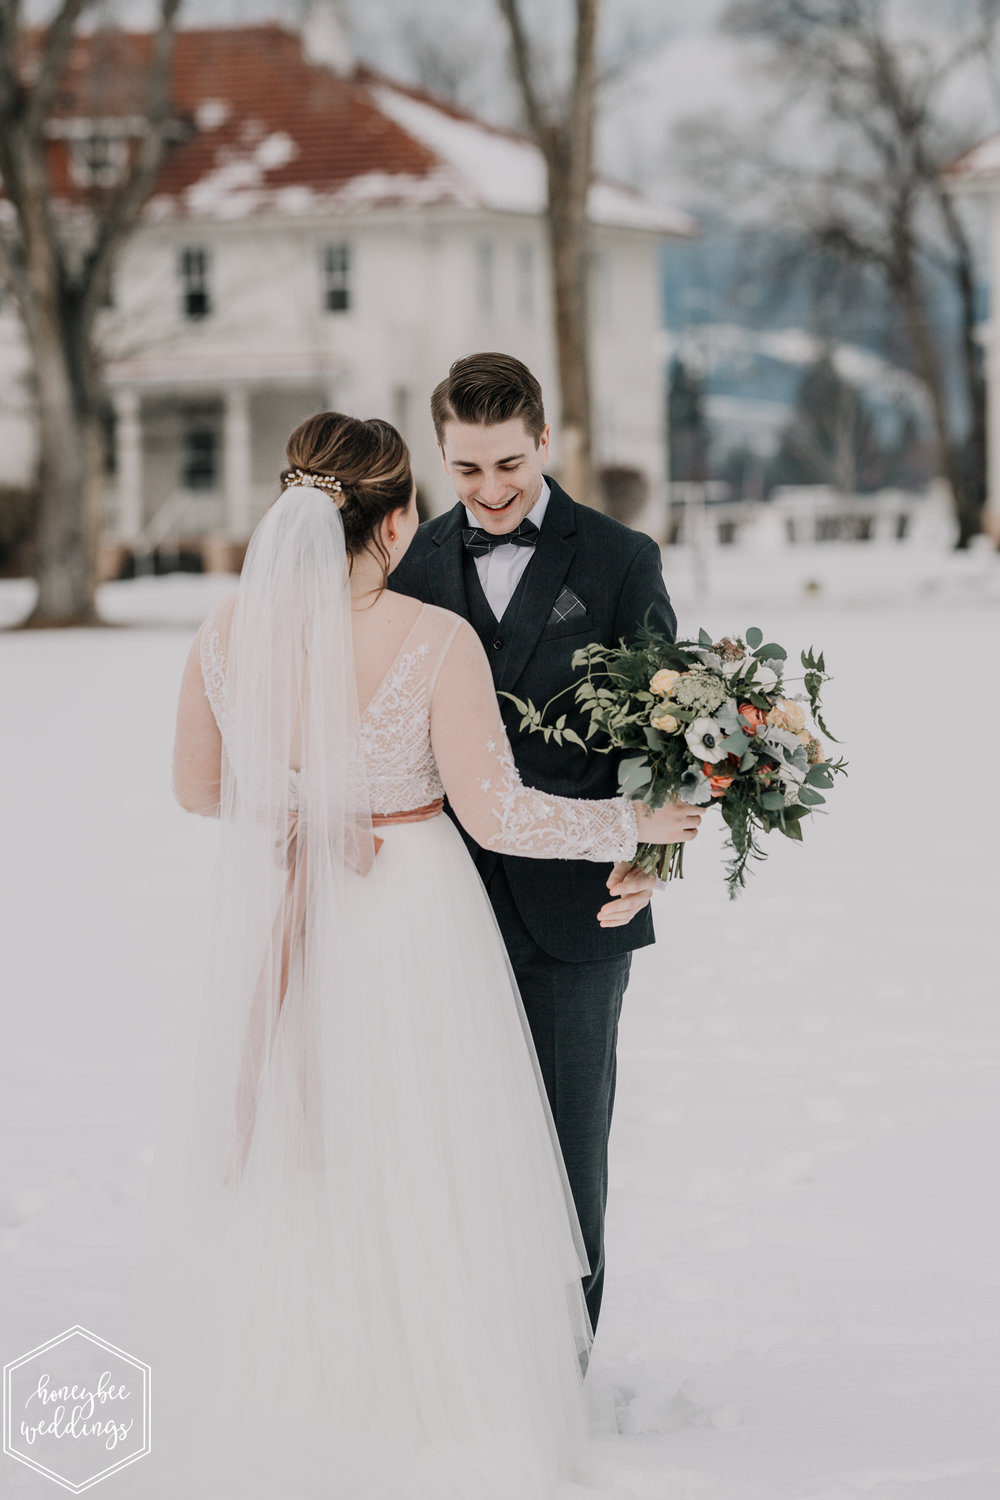 0062Montana Wedding Photographer_Montana winter wedding_Wedding at Fort Missoula_Meri & Carter_December 31, 2015-816.jpg